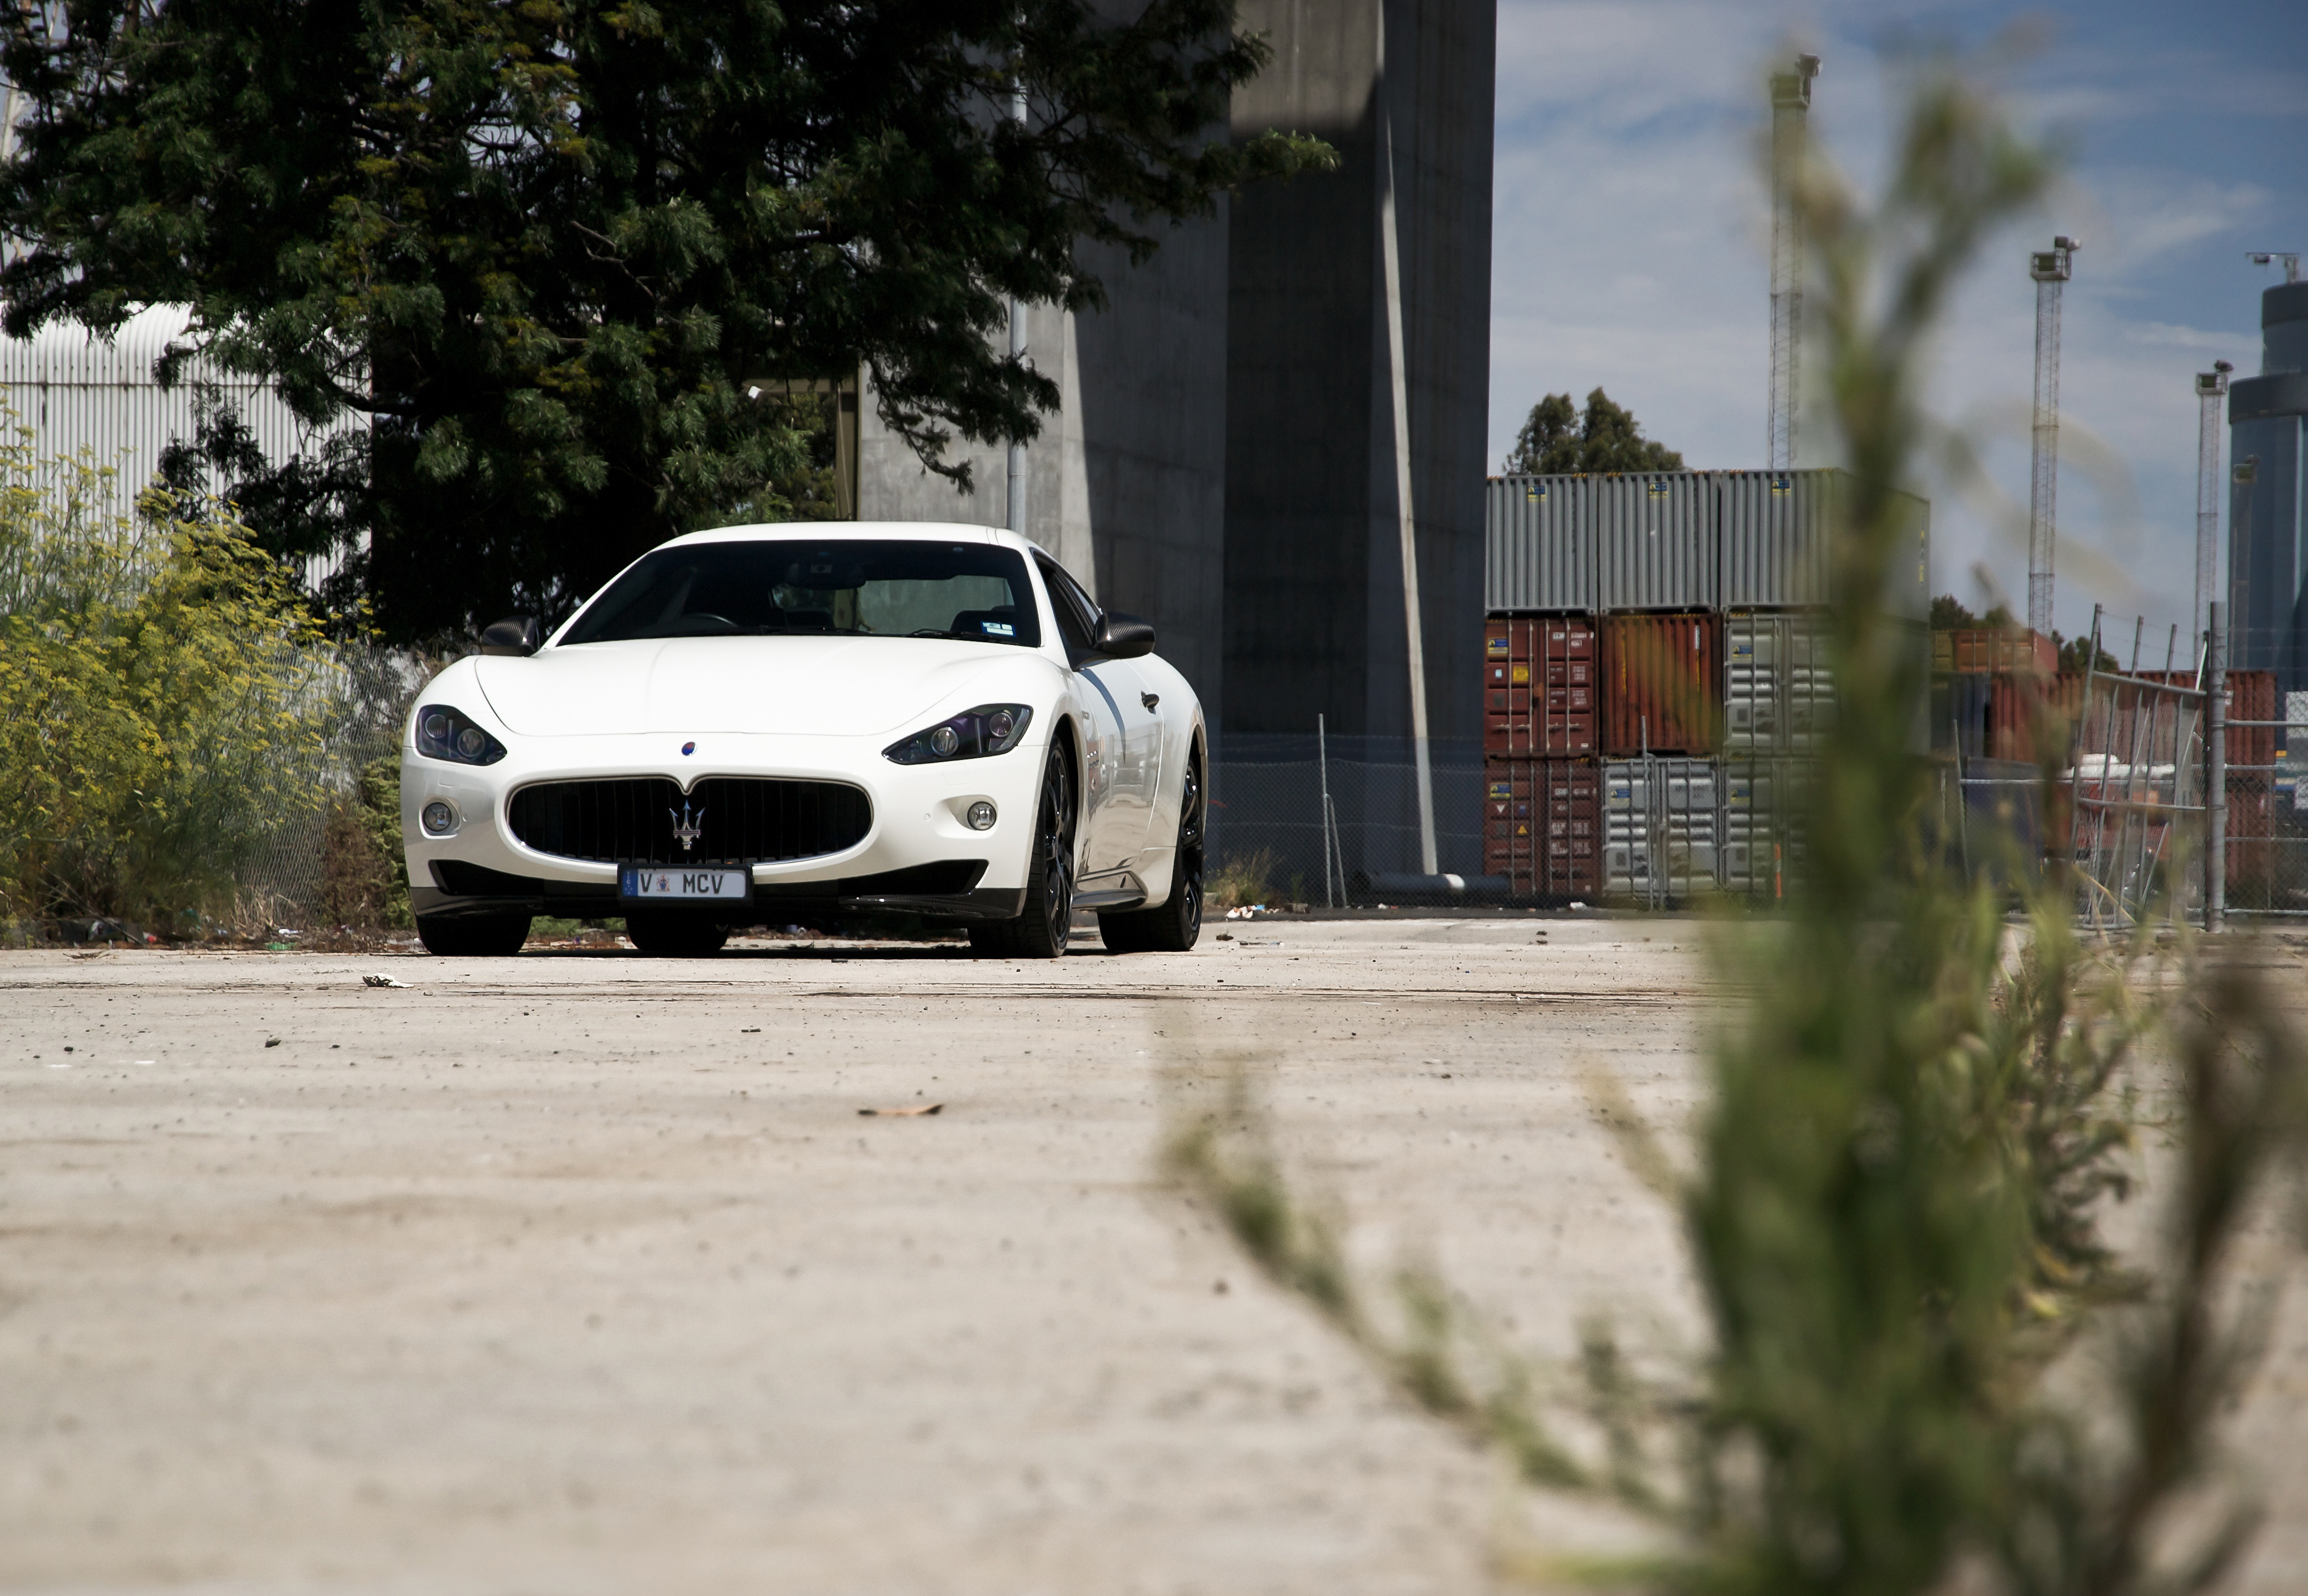 79957 download wallpaper Cars, Maserati, Granturismo, Front View screensavers and pictures for free